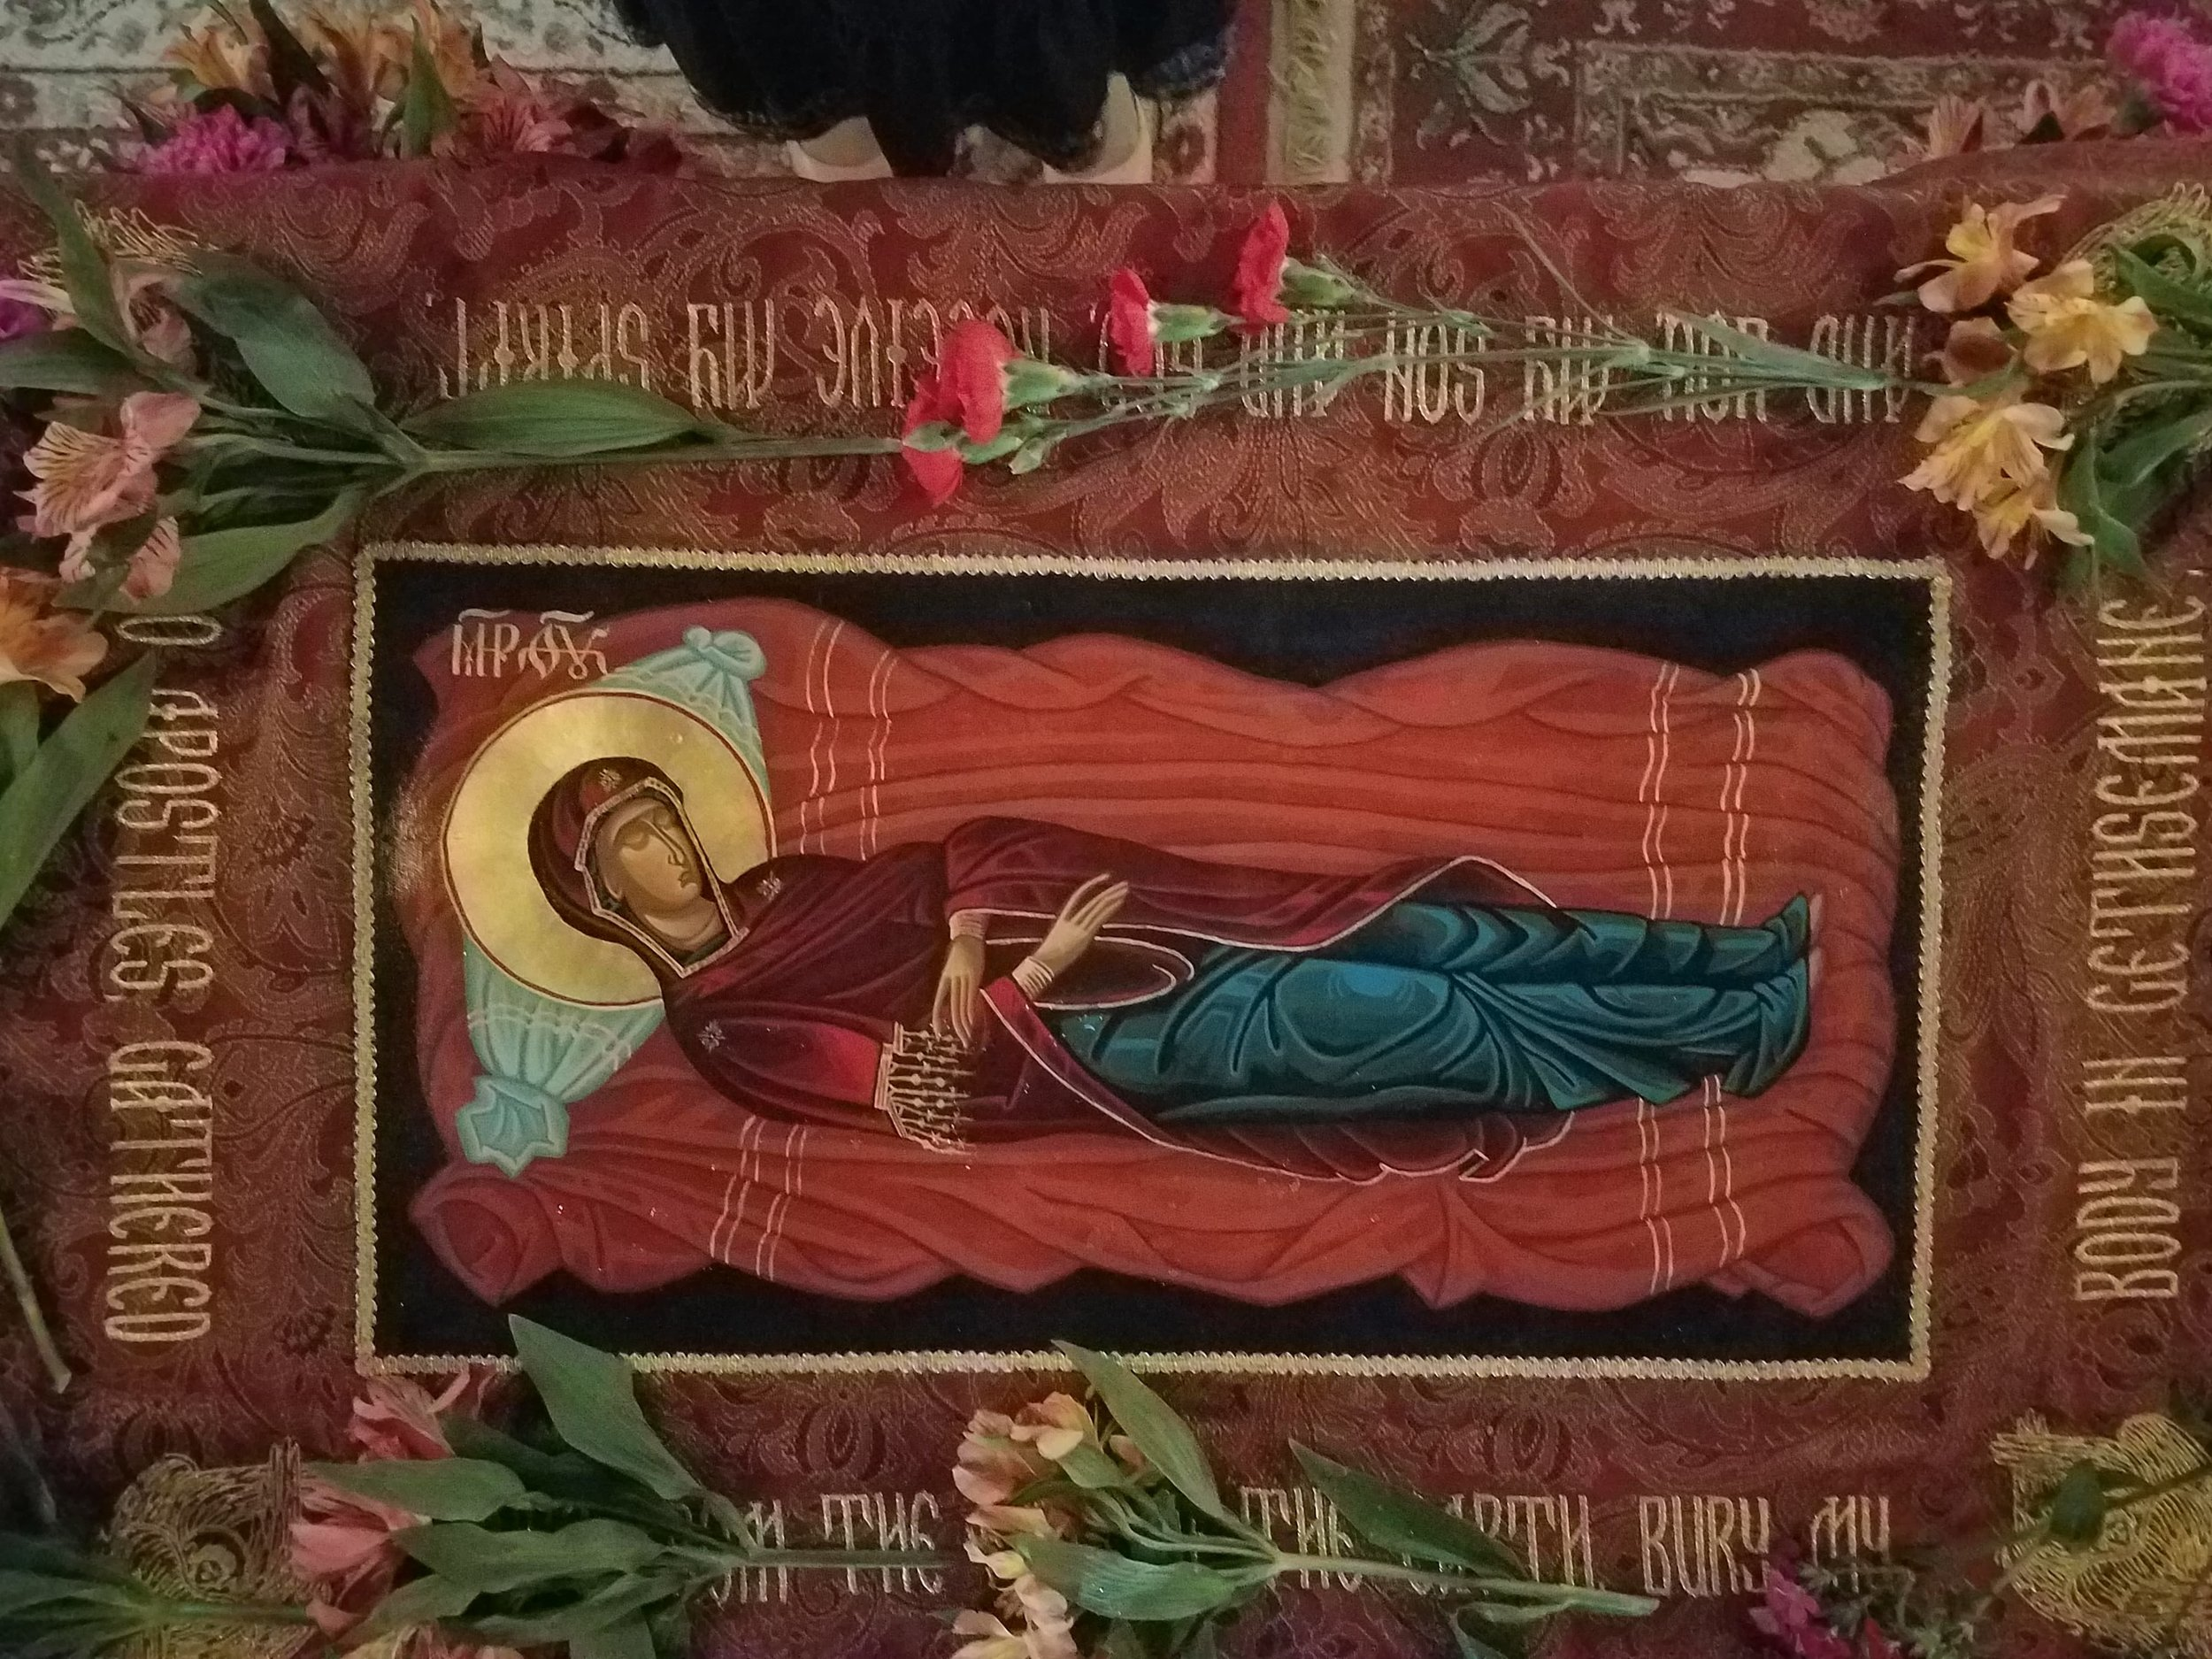 Feast of the Dormition 2019